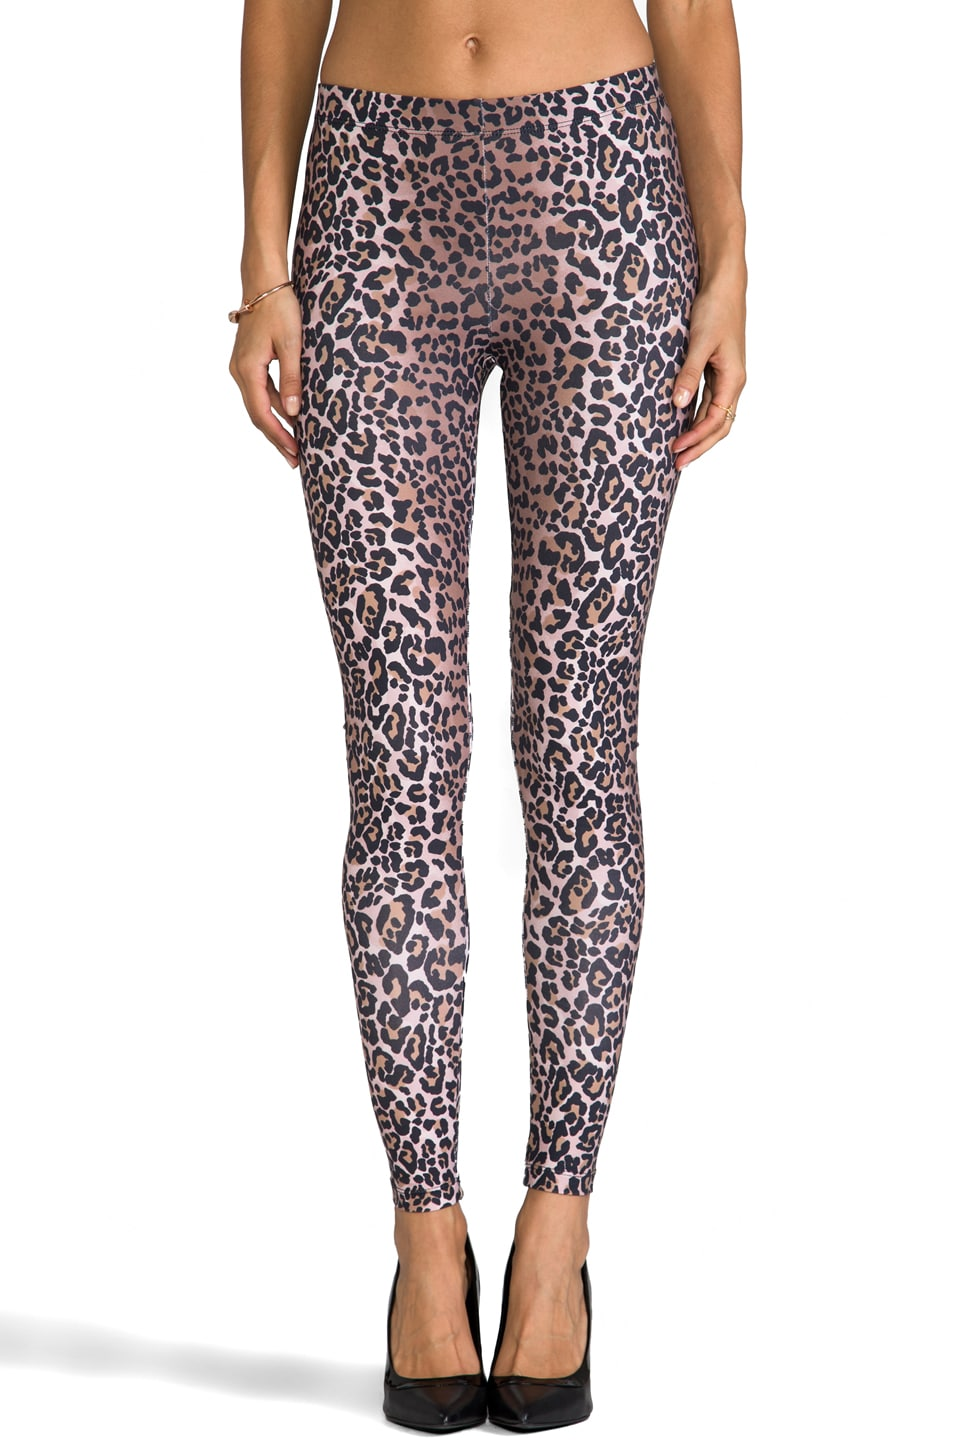 David Lerner x REVOLVE Legging in Leopard